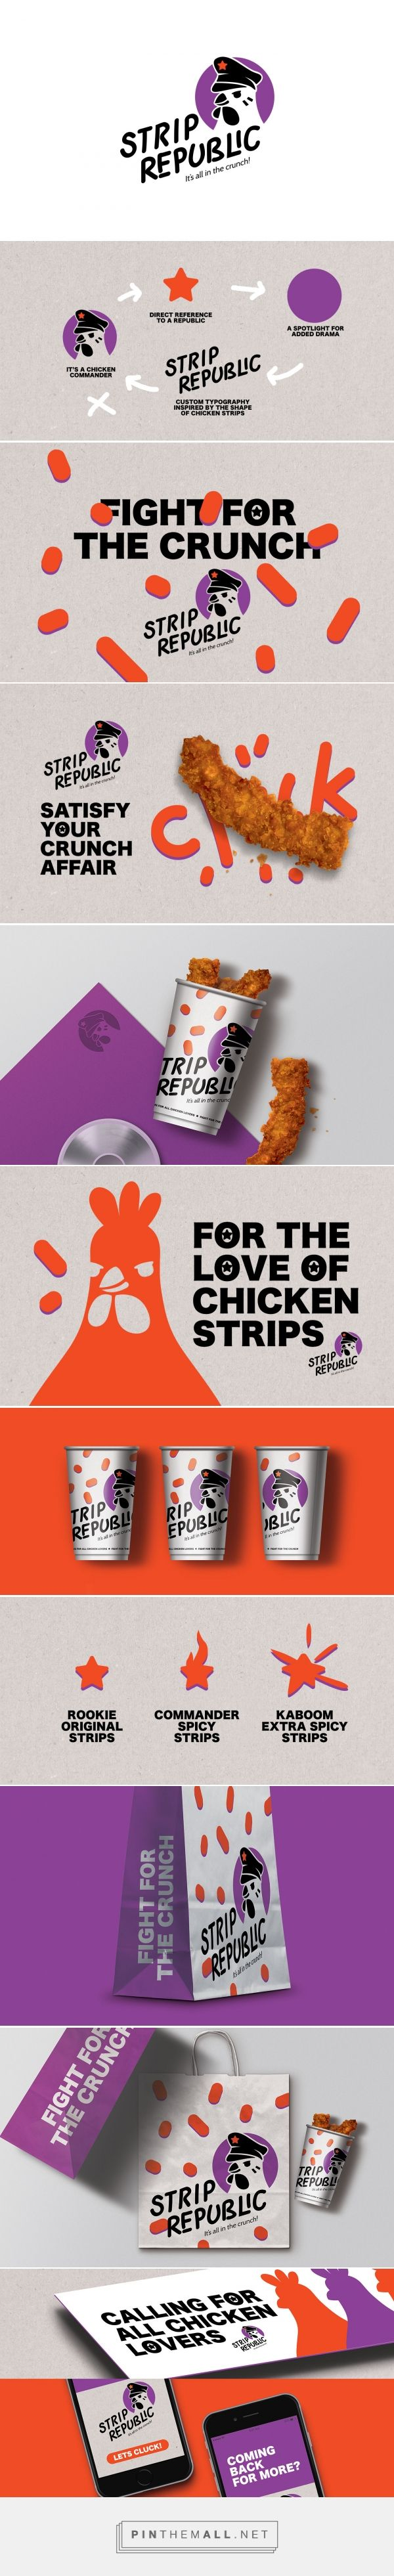 Art direction, branding and packaging for Strip Republic on Behance by Studio AIO Shuwaikh, Kuwait curated by Packaging Diva PD. Let's have some chicken for the packaging smile file : )